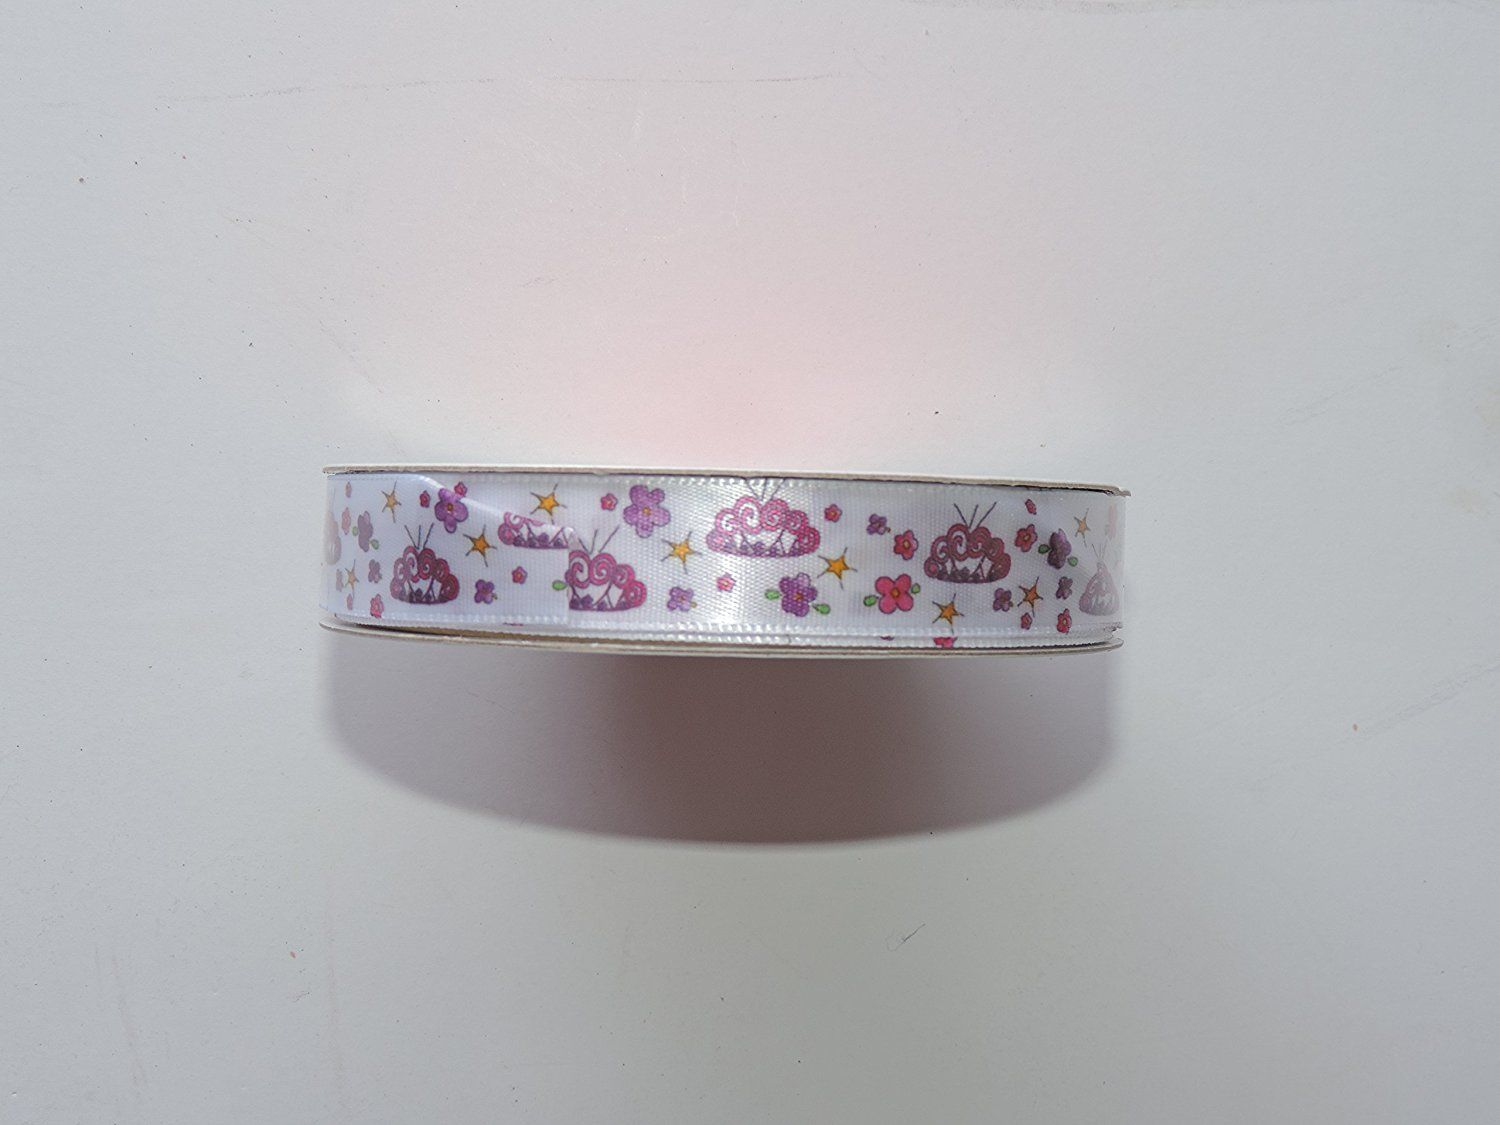 CraftSmart 100% Polyester 5/8 in. x 9ft. Decorative Tiara Ribbon - Great for Any Occasion! *** You can find more details by visiting the image link.